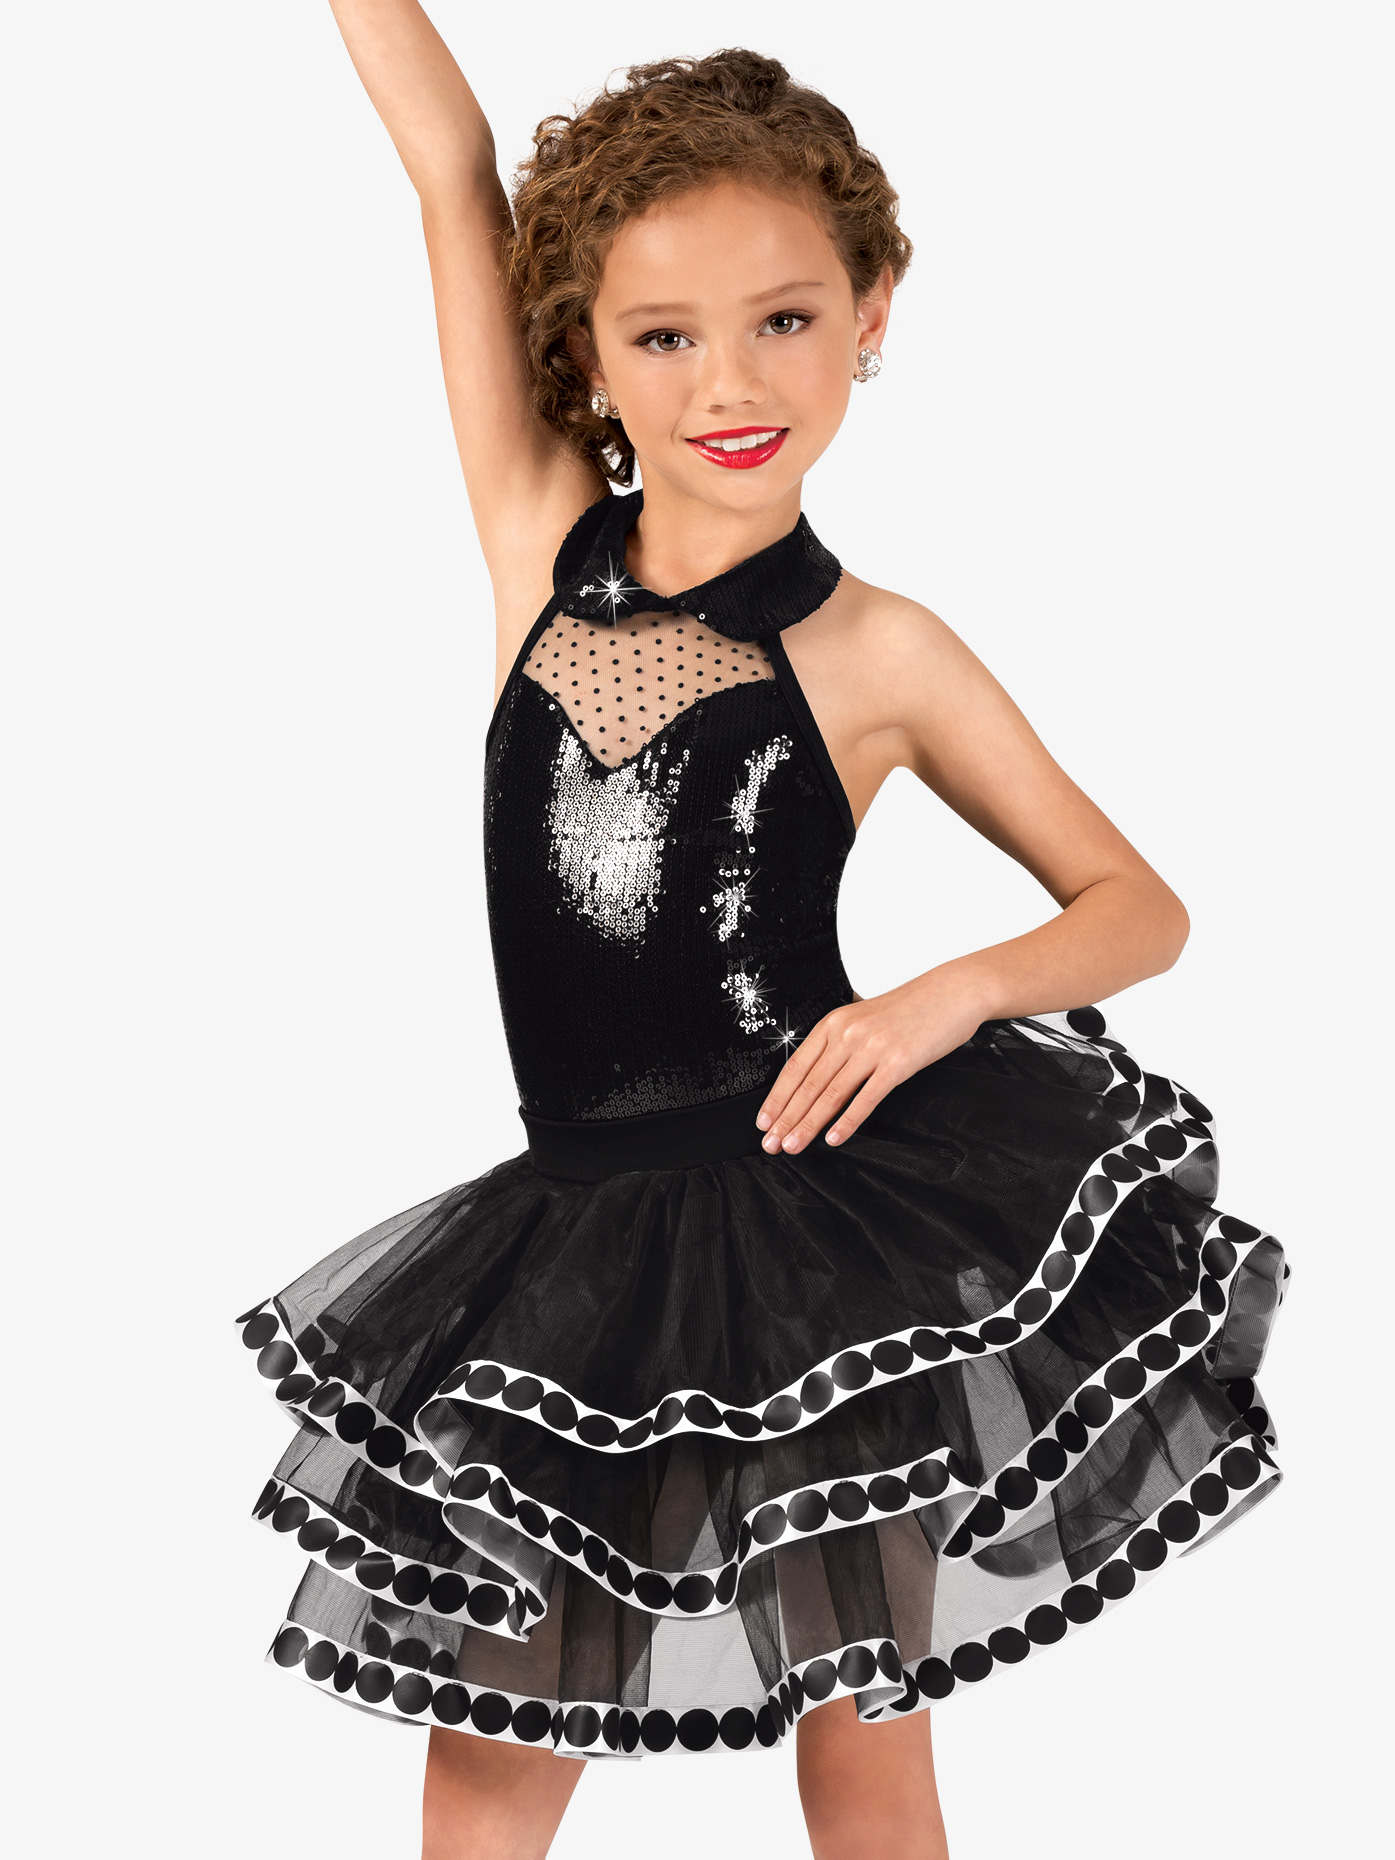 21061062b0bc Polka Dot Collared Halter Costume Tutu Dress - Dresses